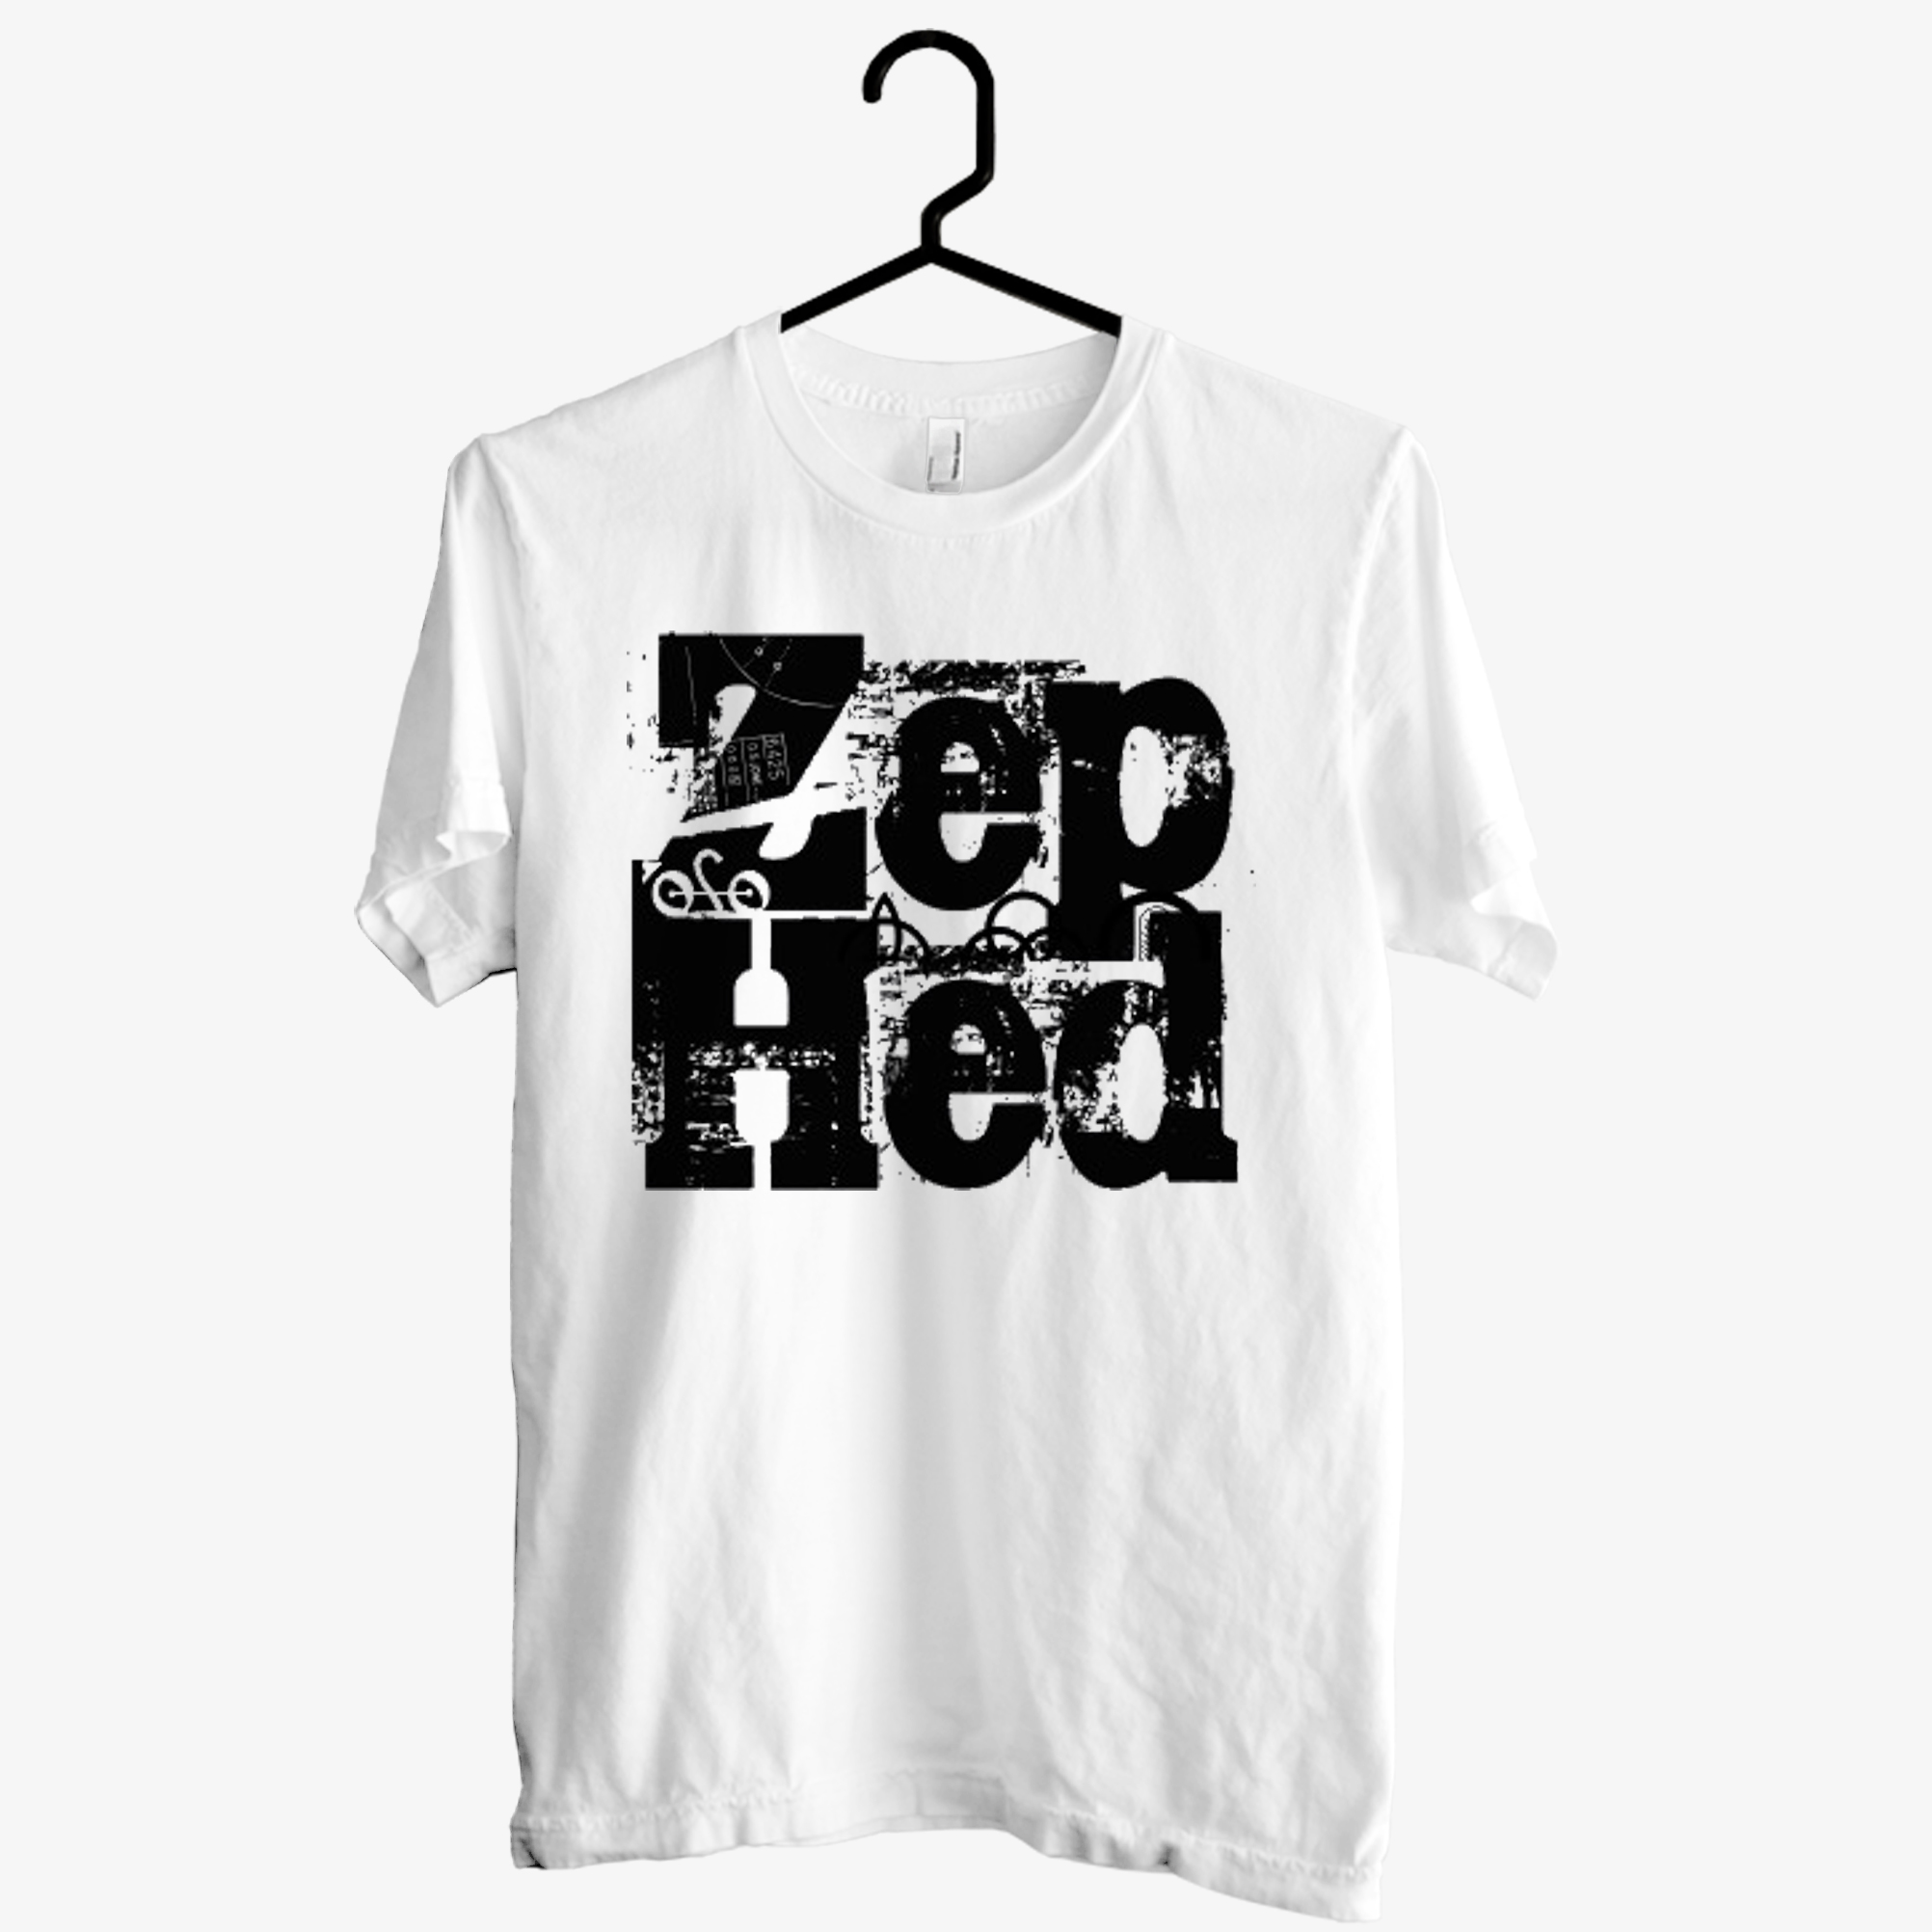 Zed Hed T shirt